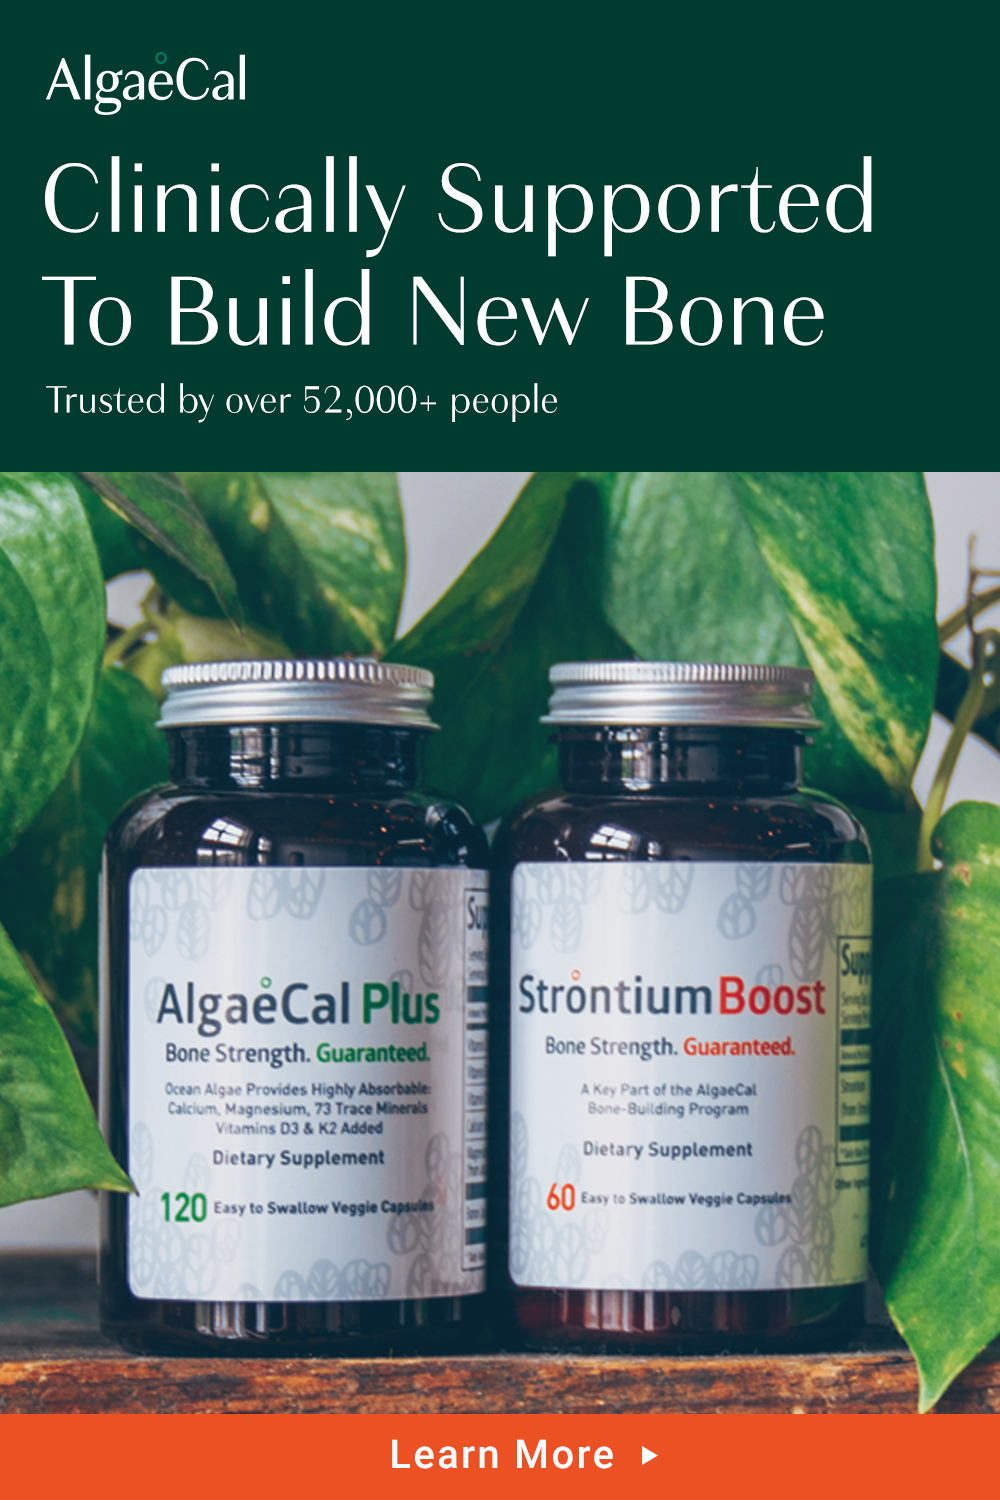 21++ Does algaecal really work for osteoporosis info